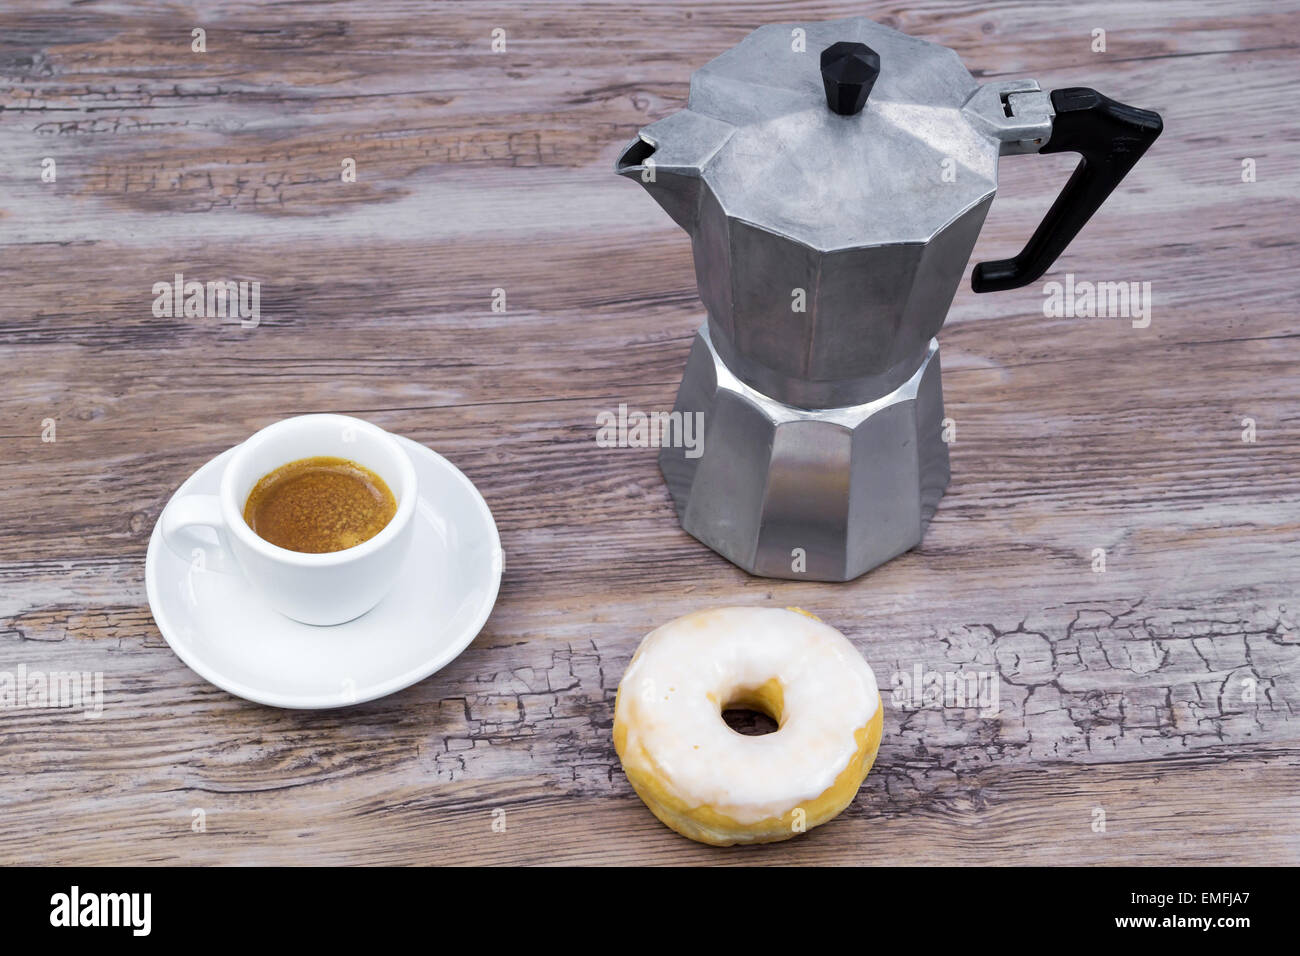 Espresso with a glazed donut on a wooden table from above with copy space - Stock Image